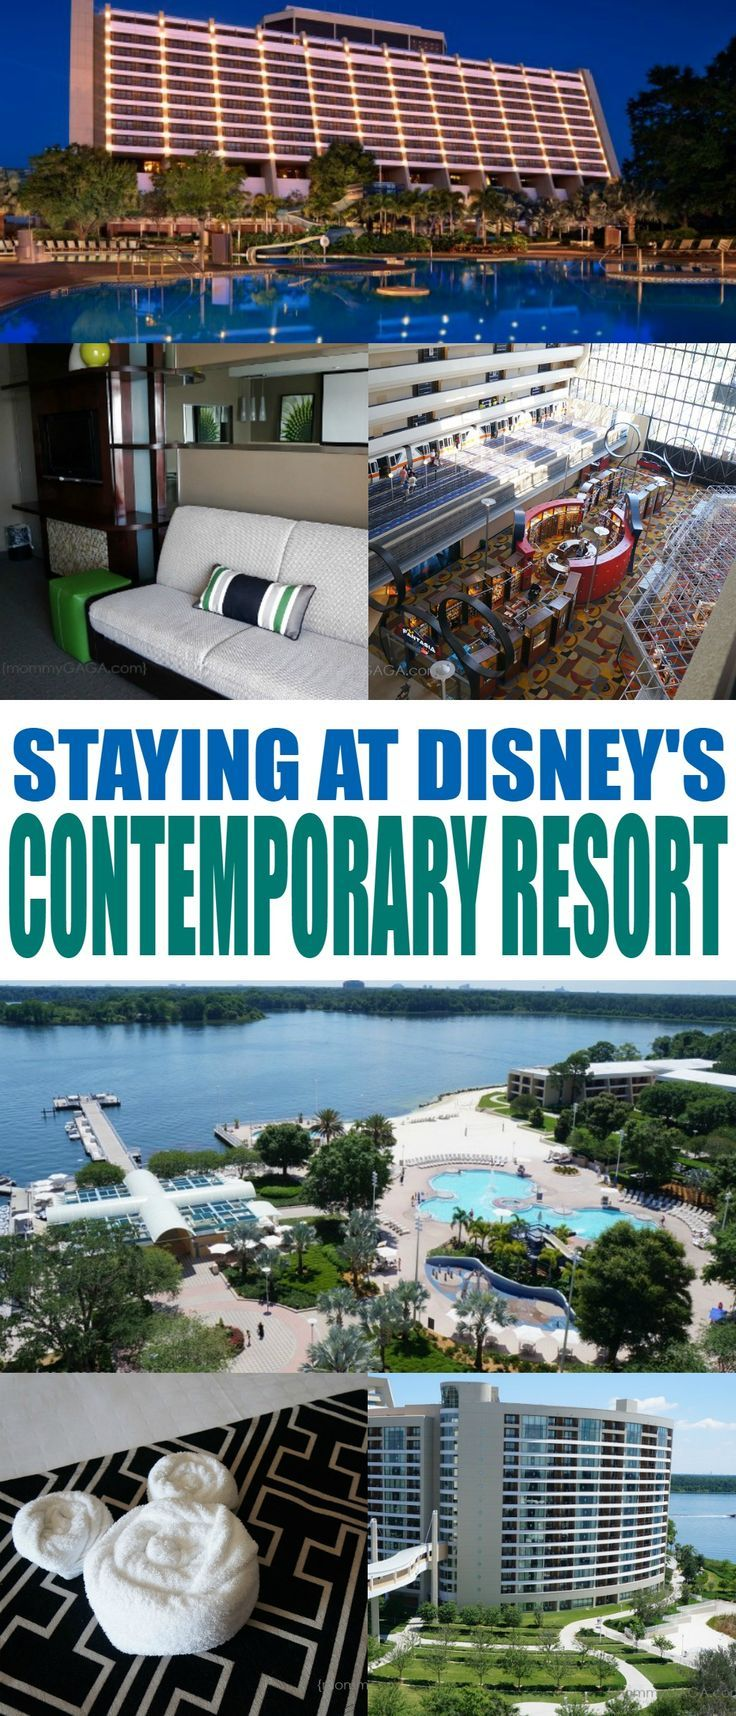 best 25+ disney contemporary resort ideas on pinterest | disney